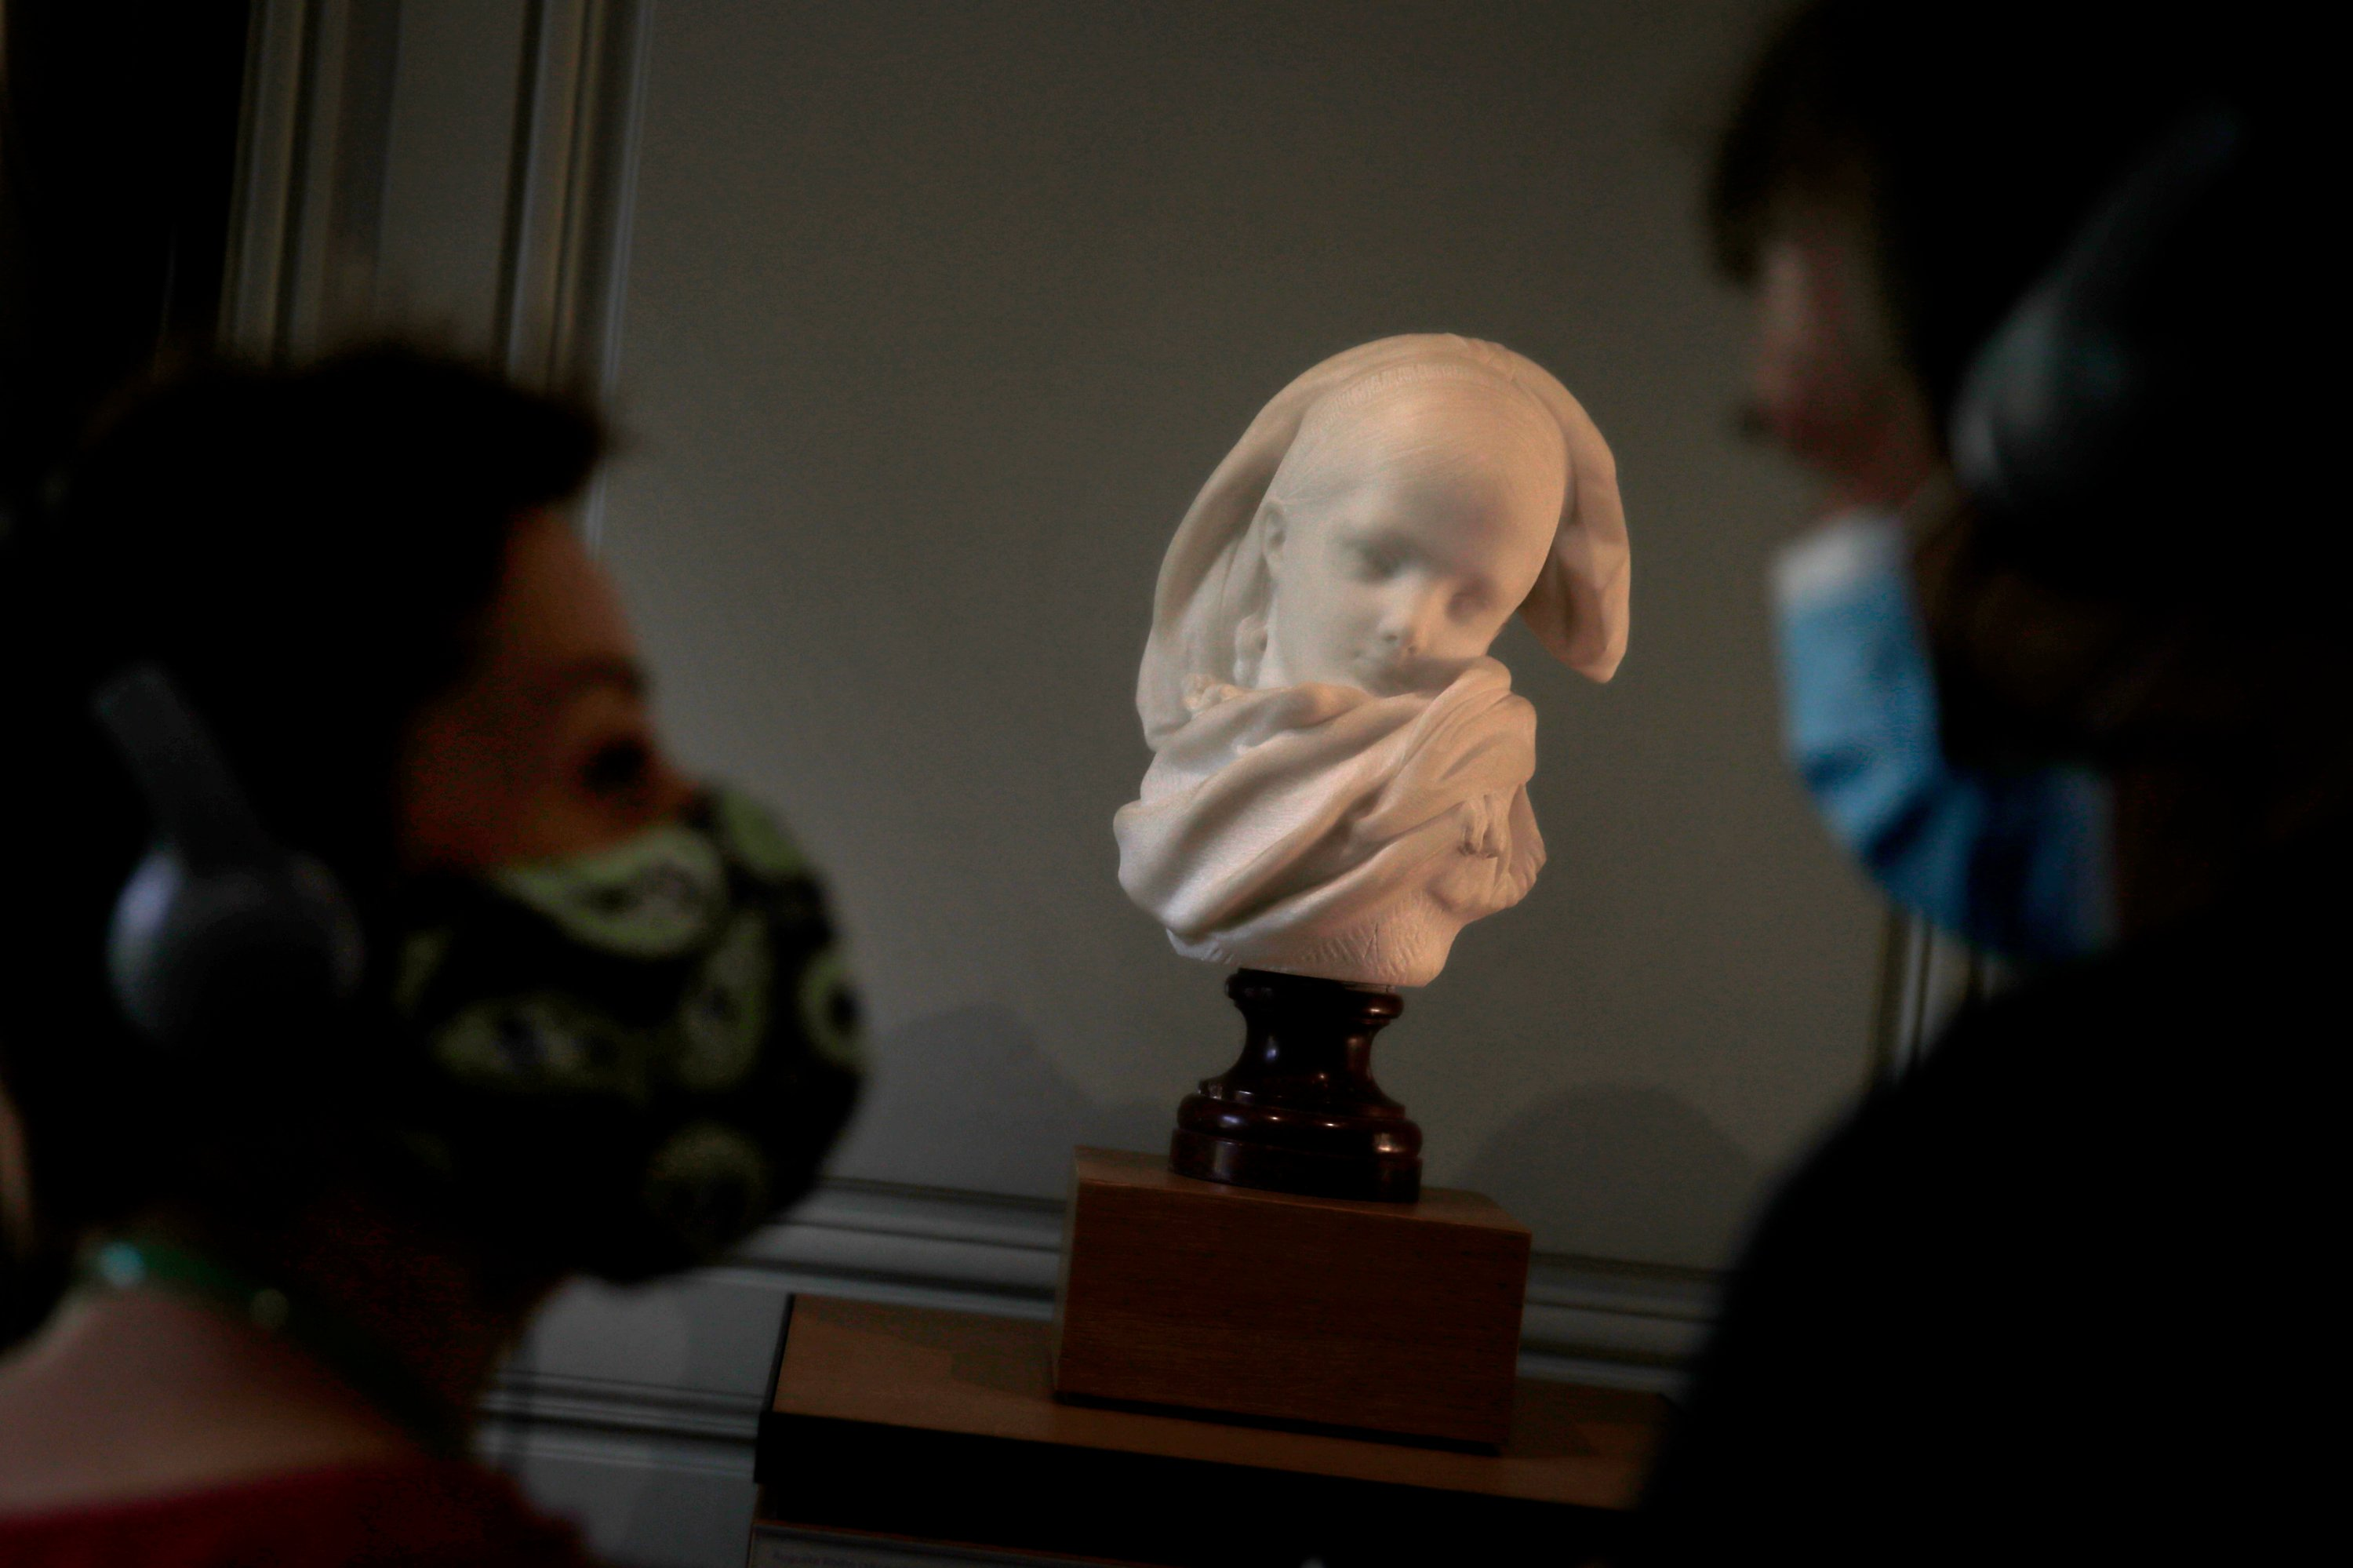 Visitors view l'Orpheline Alsacienne by French sculptor Auguste Rodin in Paris France, July 7, 2020. (AP Photo)